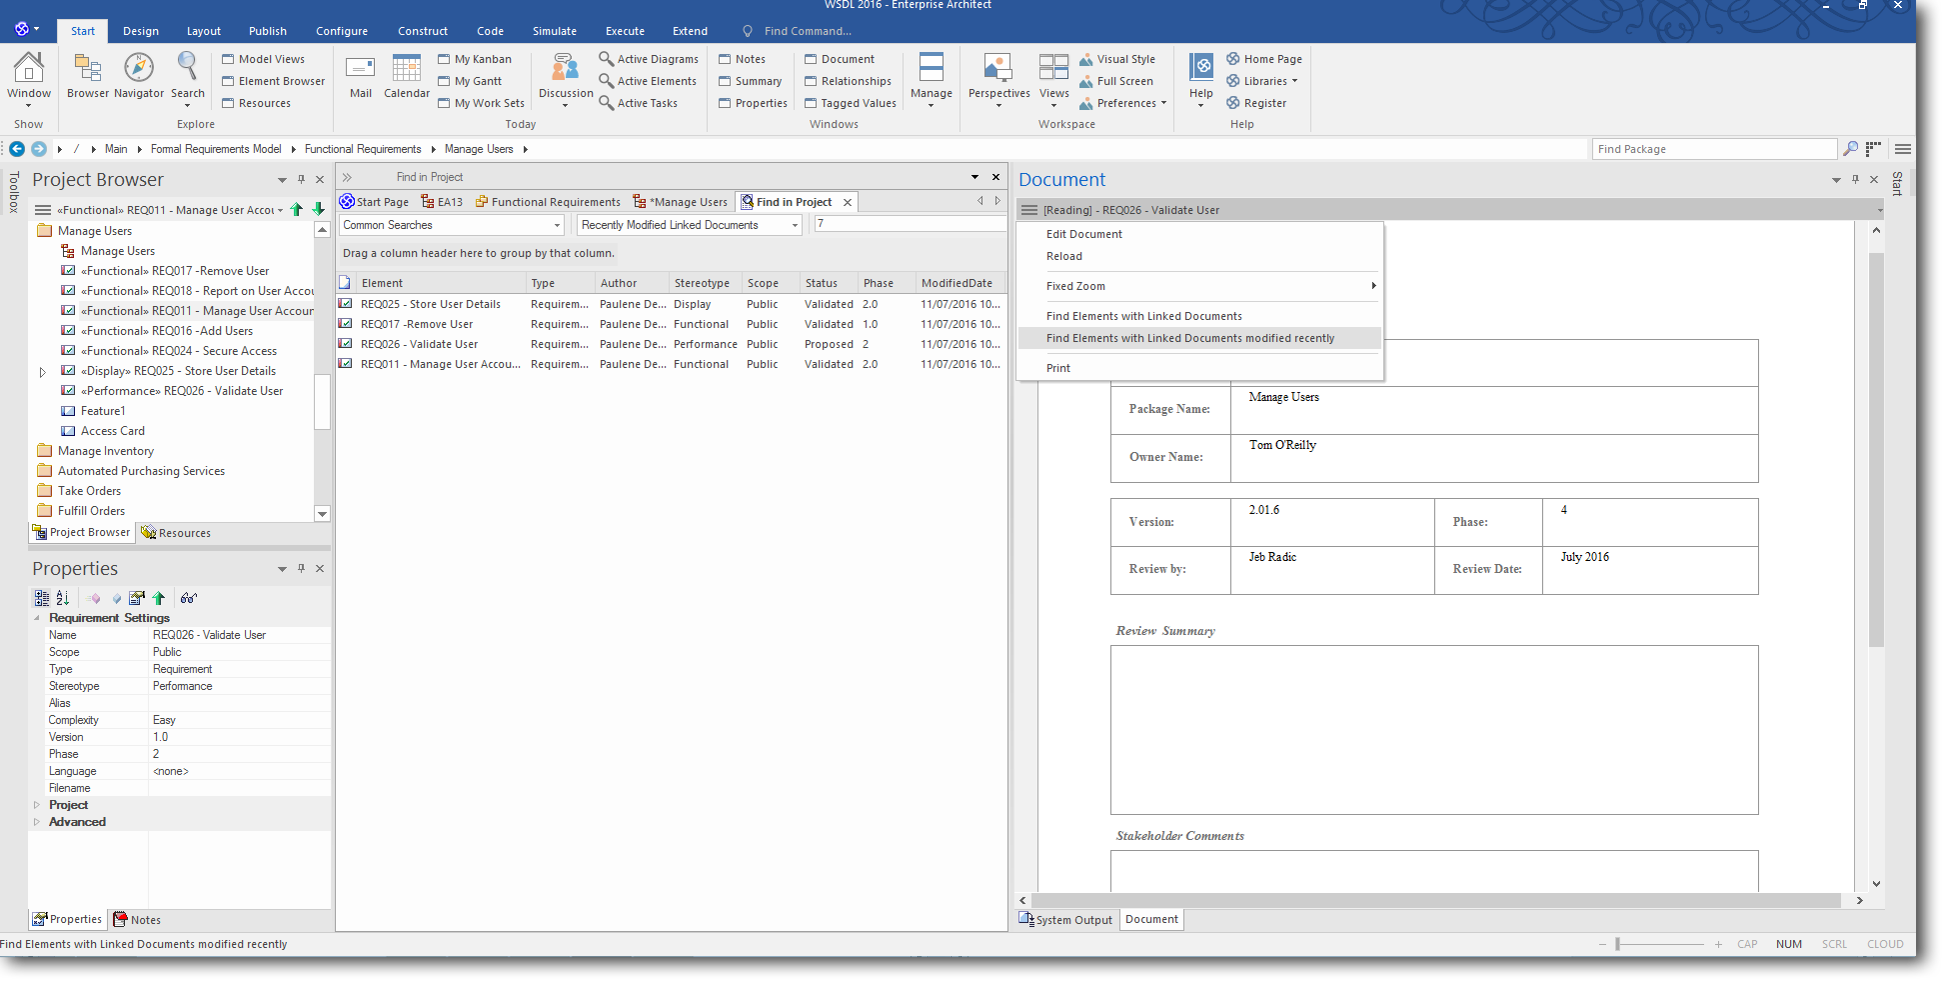 Enterprise Architect 13: Dynamic Documents - Find Elements with Linked Documents modified recently